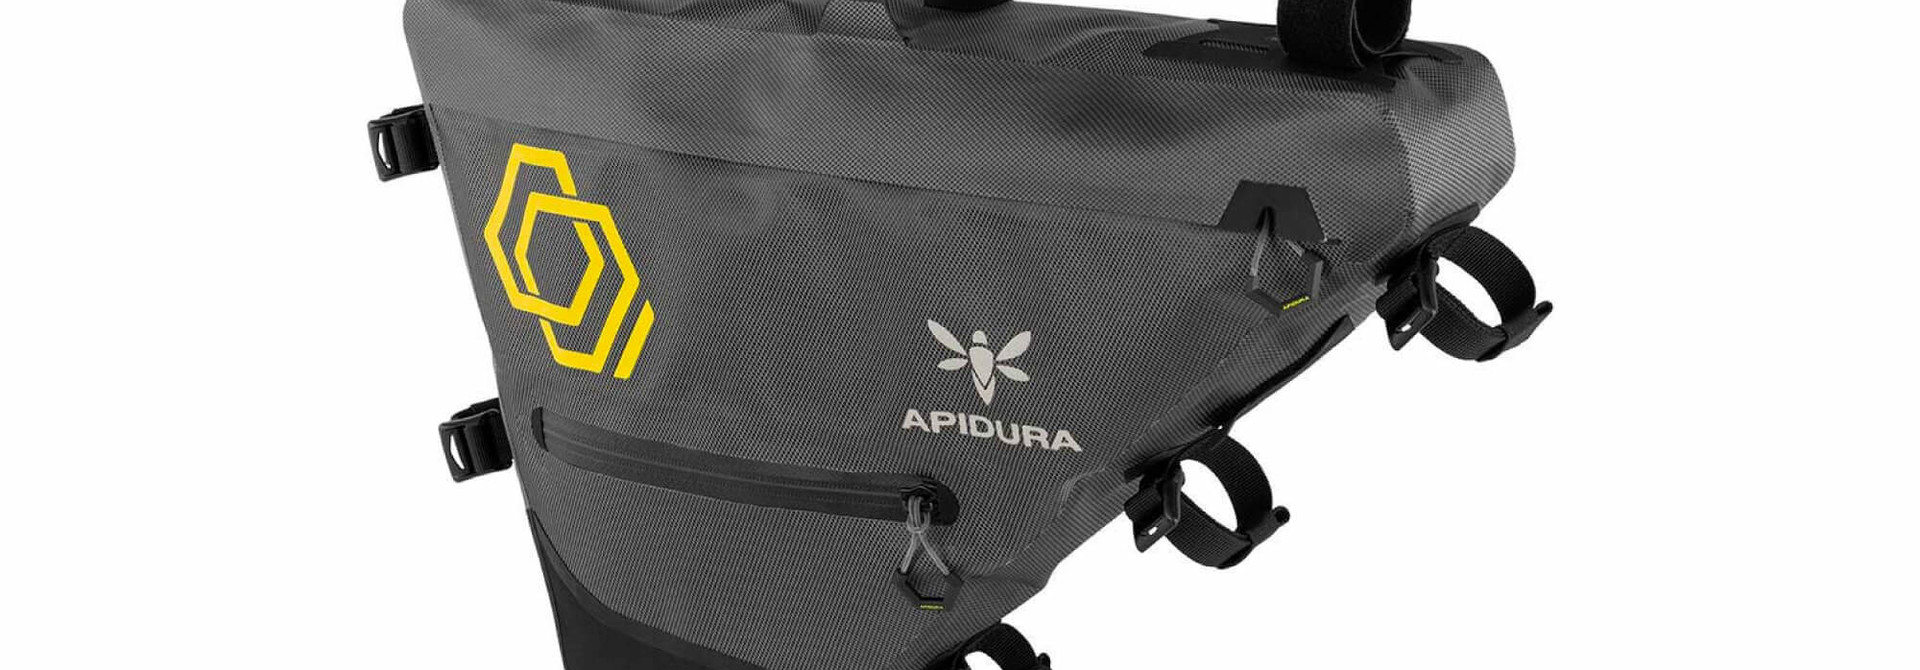 Expedition Full Frame Pack 7.5 L